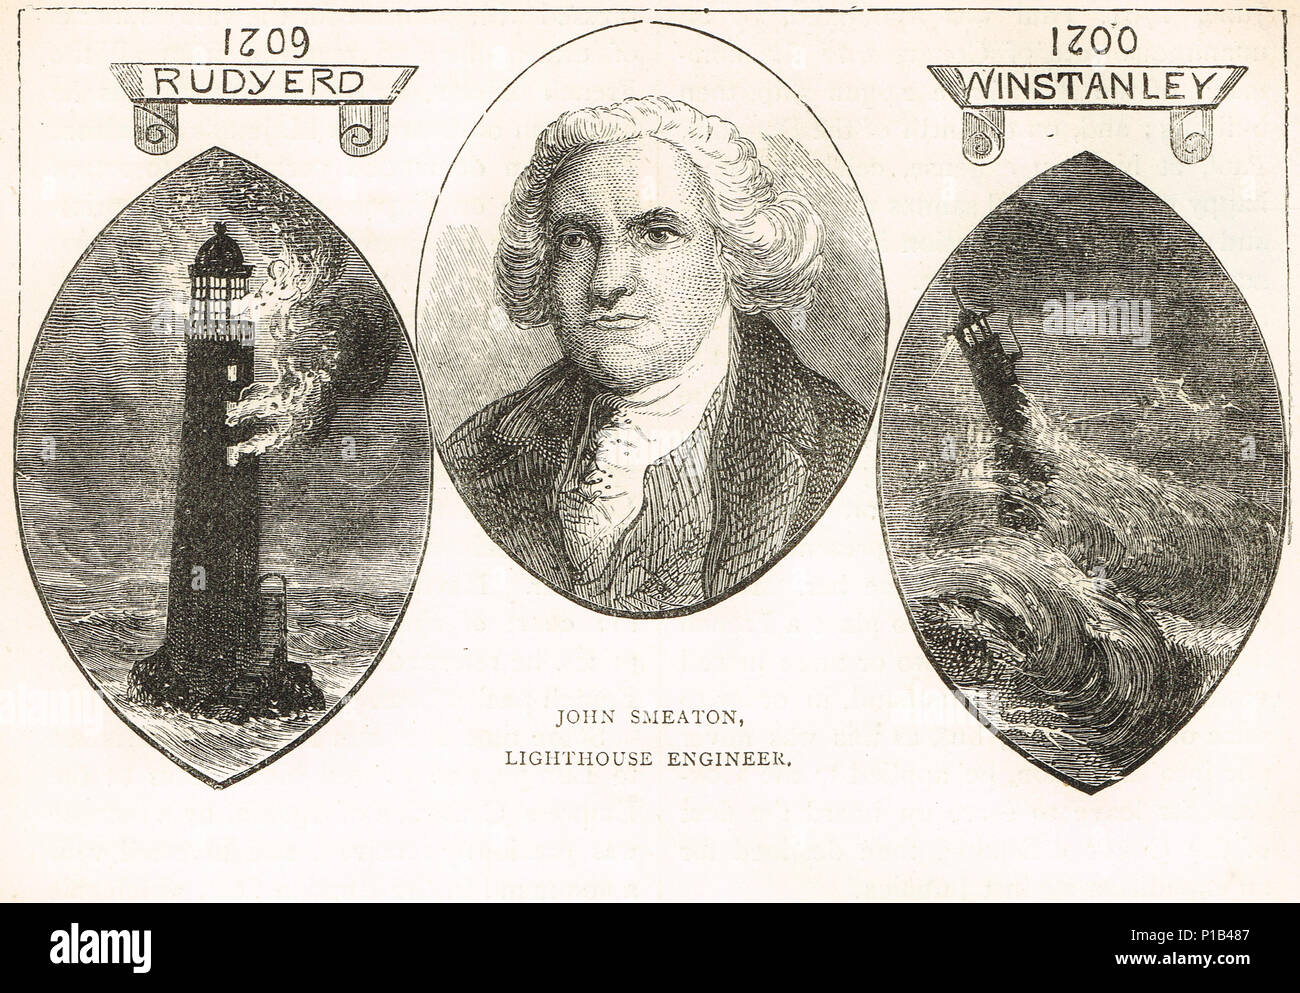 John Smeaton enginner of the Eddystone lighthouse, shown with the 2 previous lighthouses on Eddystone rock  by Henry Winstanley and John Rudyard (or Rudyerd). - Stock Image